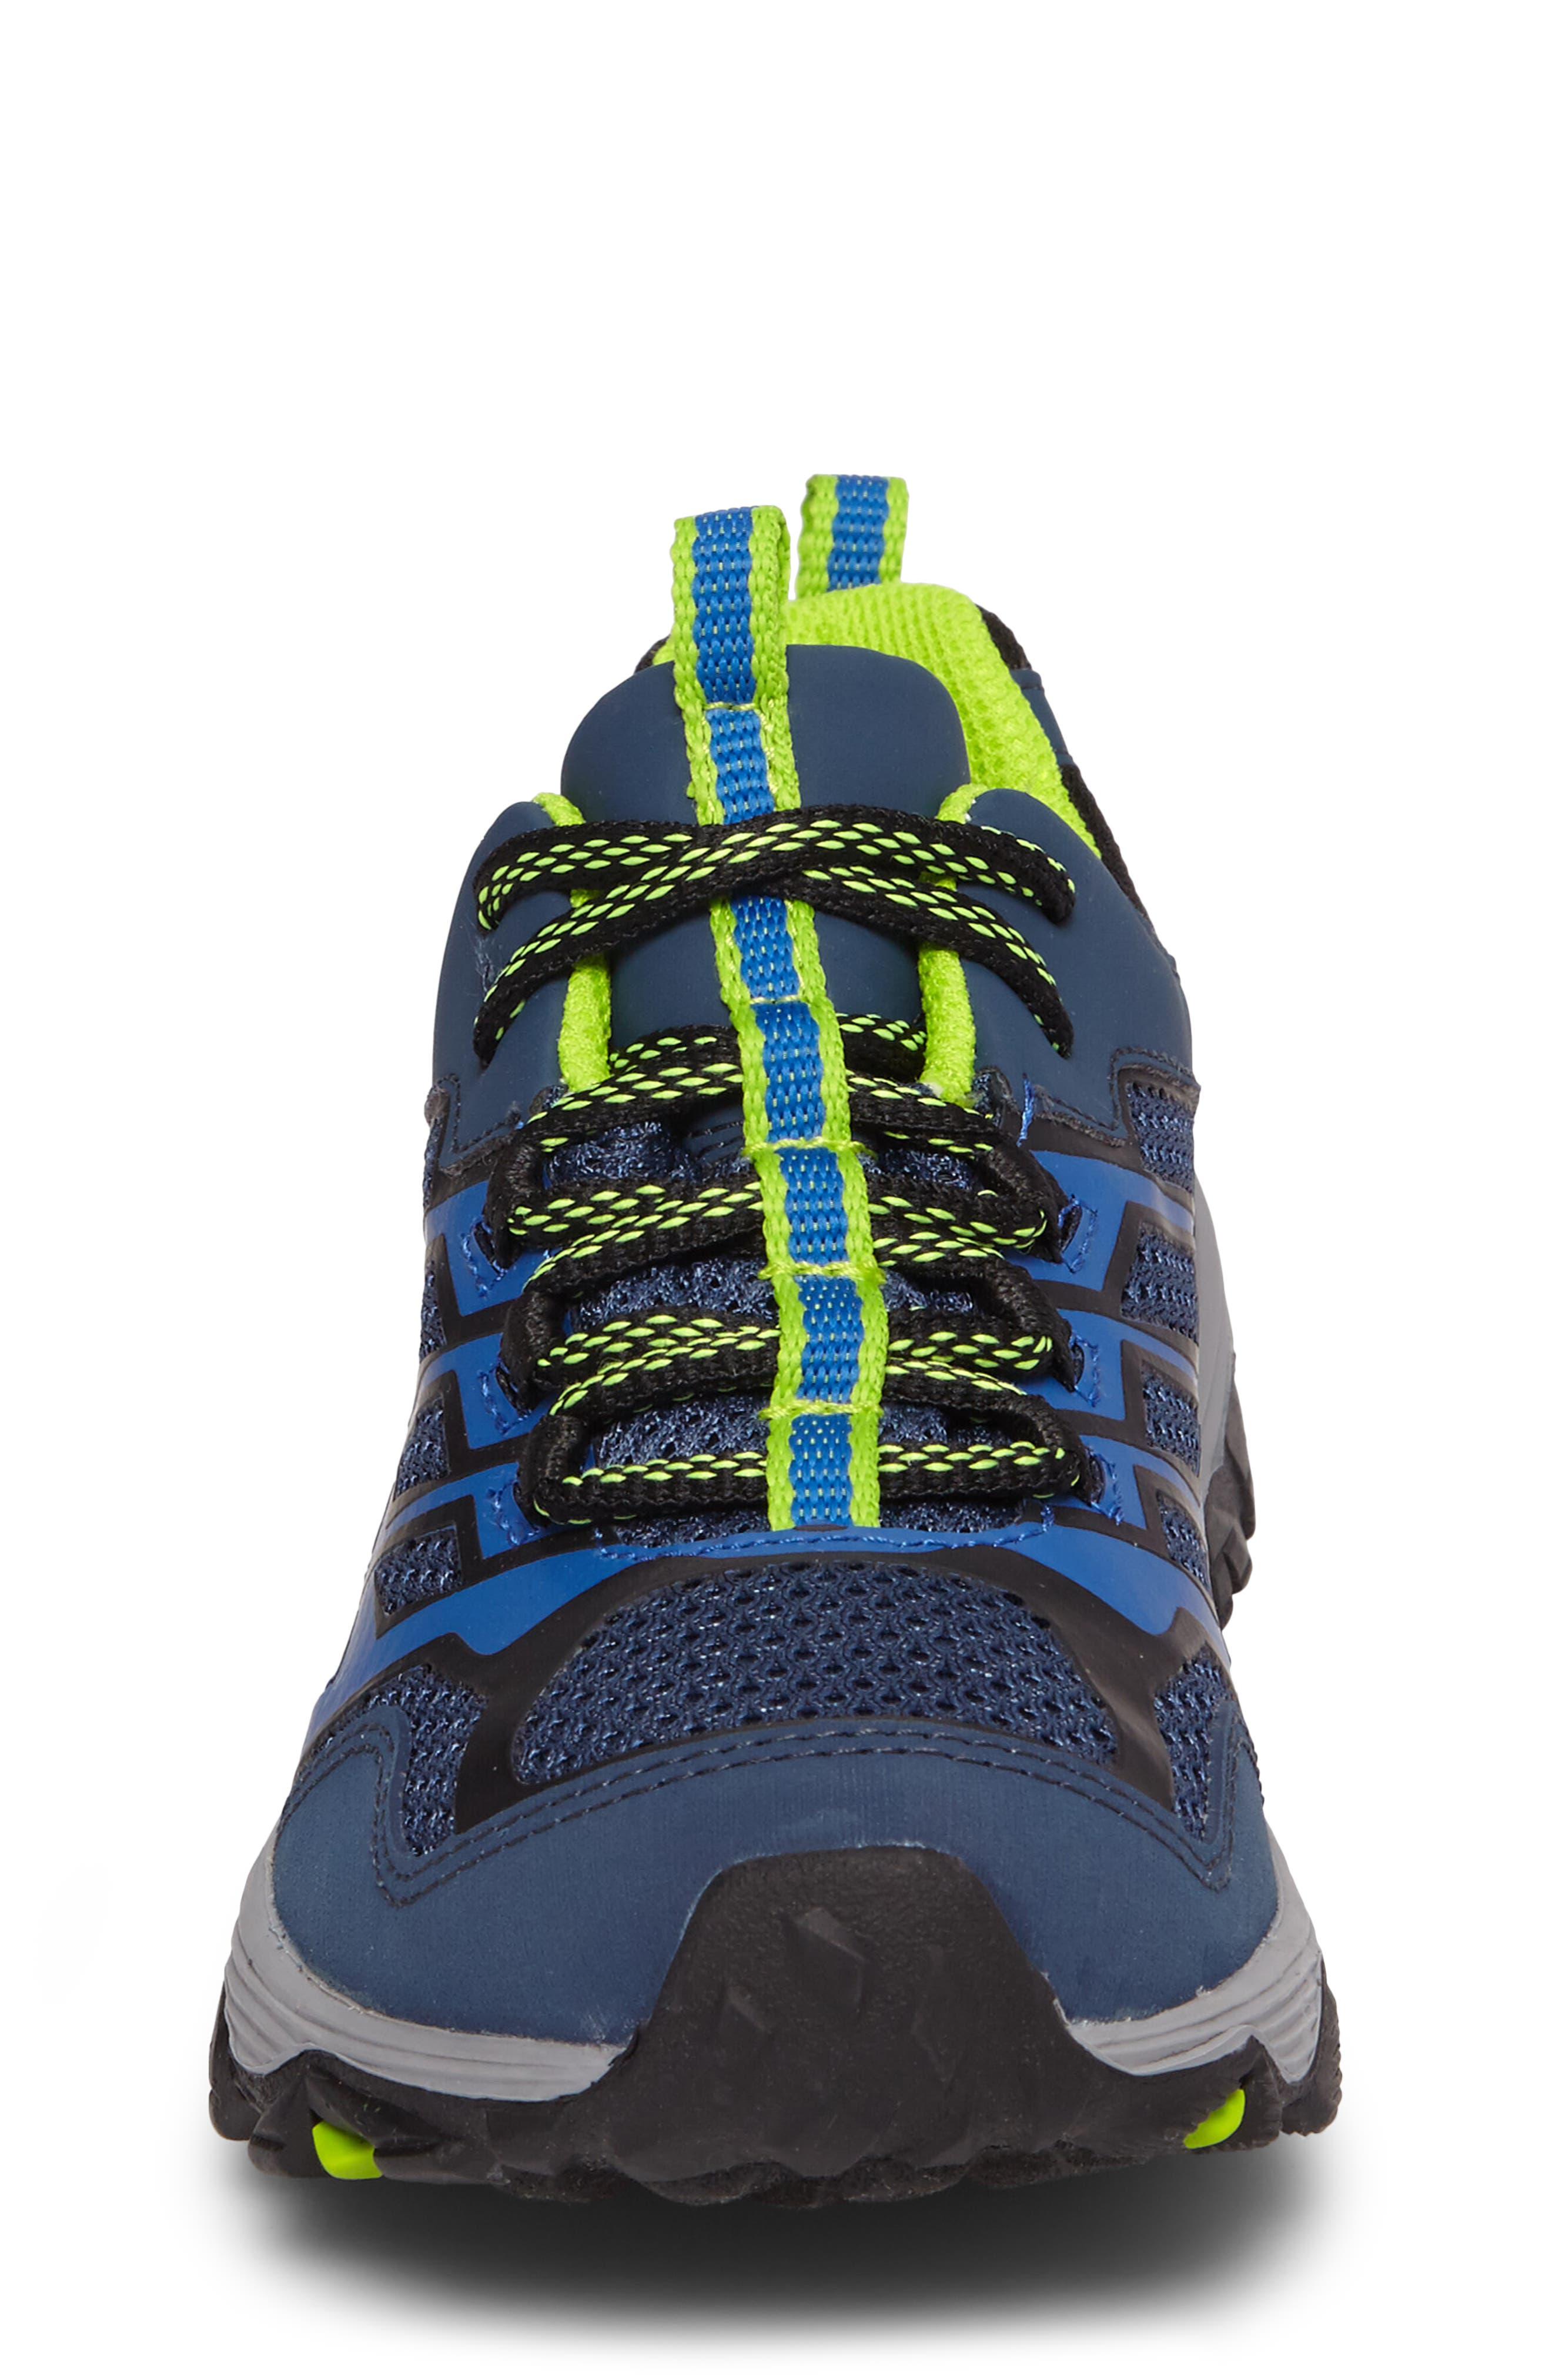 Moab FST Polar Low Waterproof Sneaker,                             Alternate thumbnail 4, color,                             Navy/ Blue